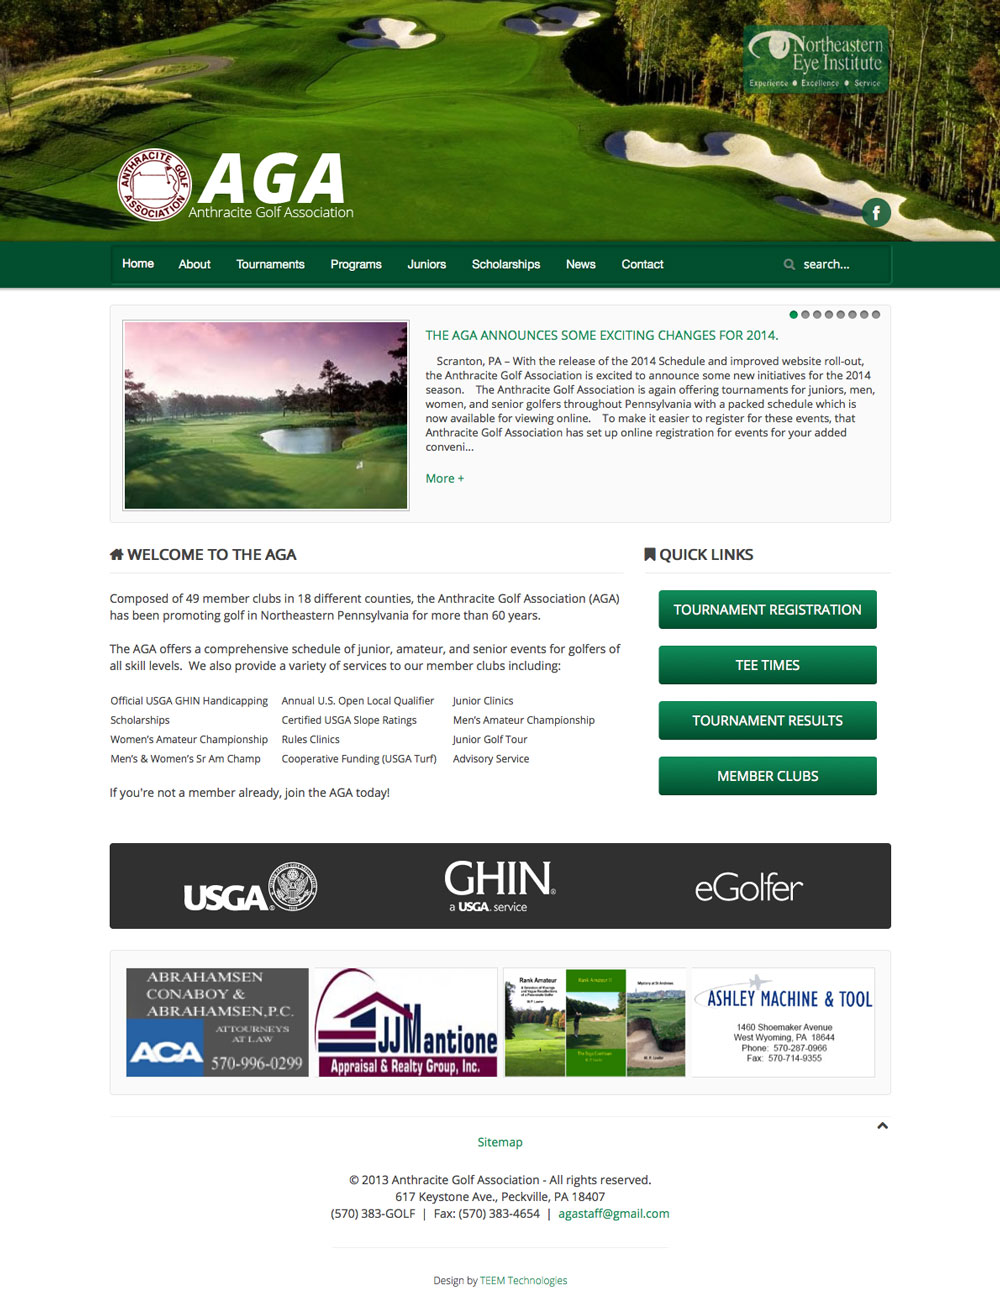 aga-website-home